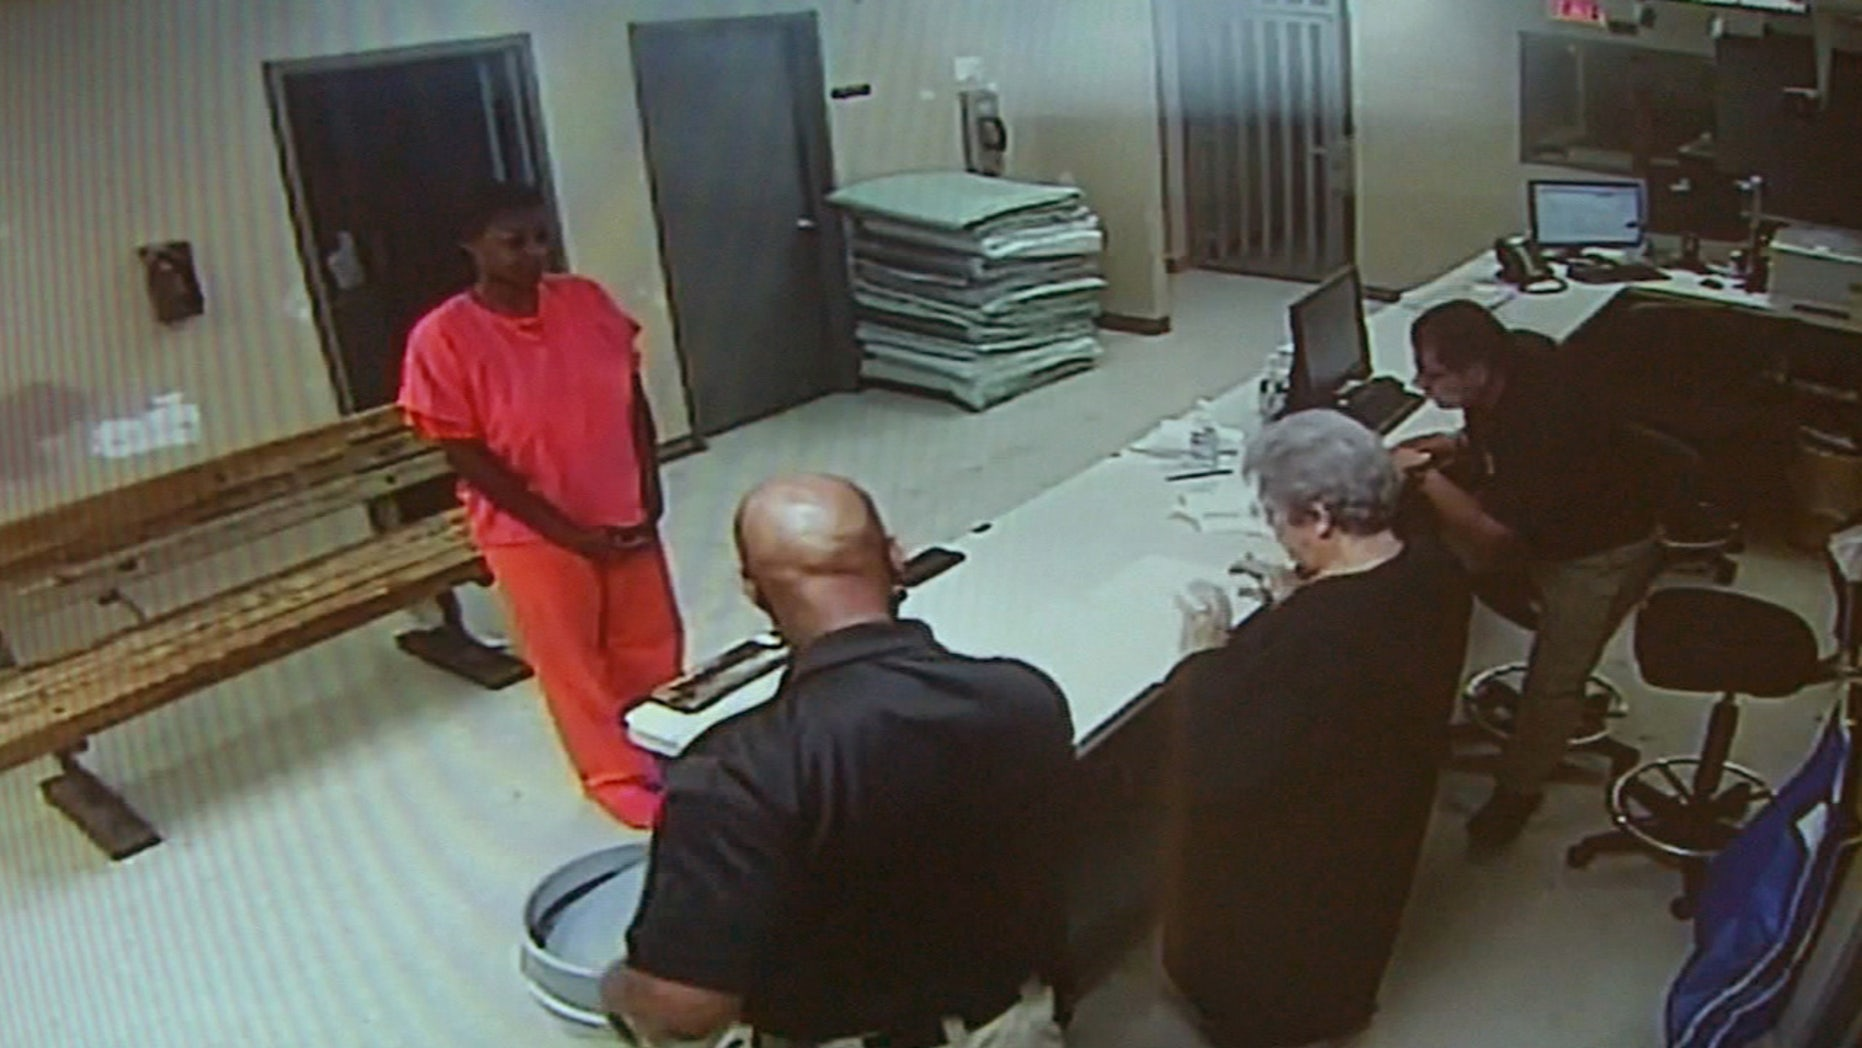 FILE - In this undated file image made from video provided by the Waller County Sheriff's Department, Sandra Bland stands before a desk at Waller County Jail in Hempstead, Texas. The small-town Texas jail where Sandra Bland died last summer needs to be replaced, and its jailers need body cameras and anger-management training, according to a report issued Tuesday, April 12, 2016 by a panel convened after Bland's death. (Waller County Sheriff's Department via AP, File)